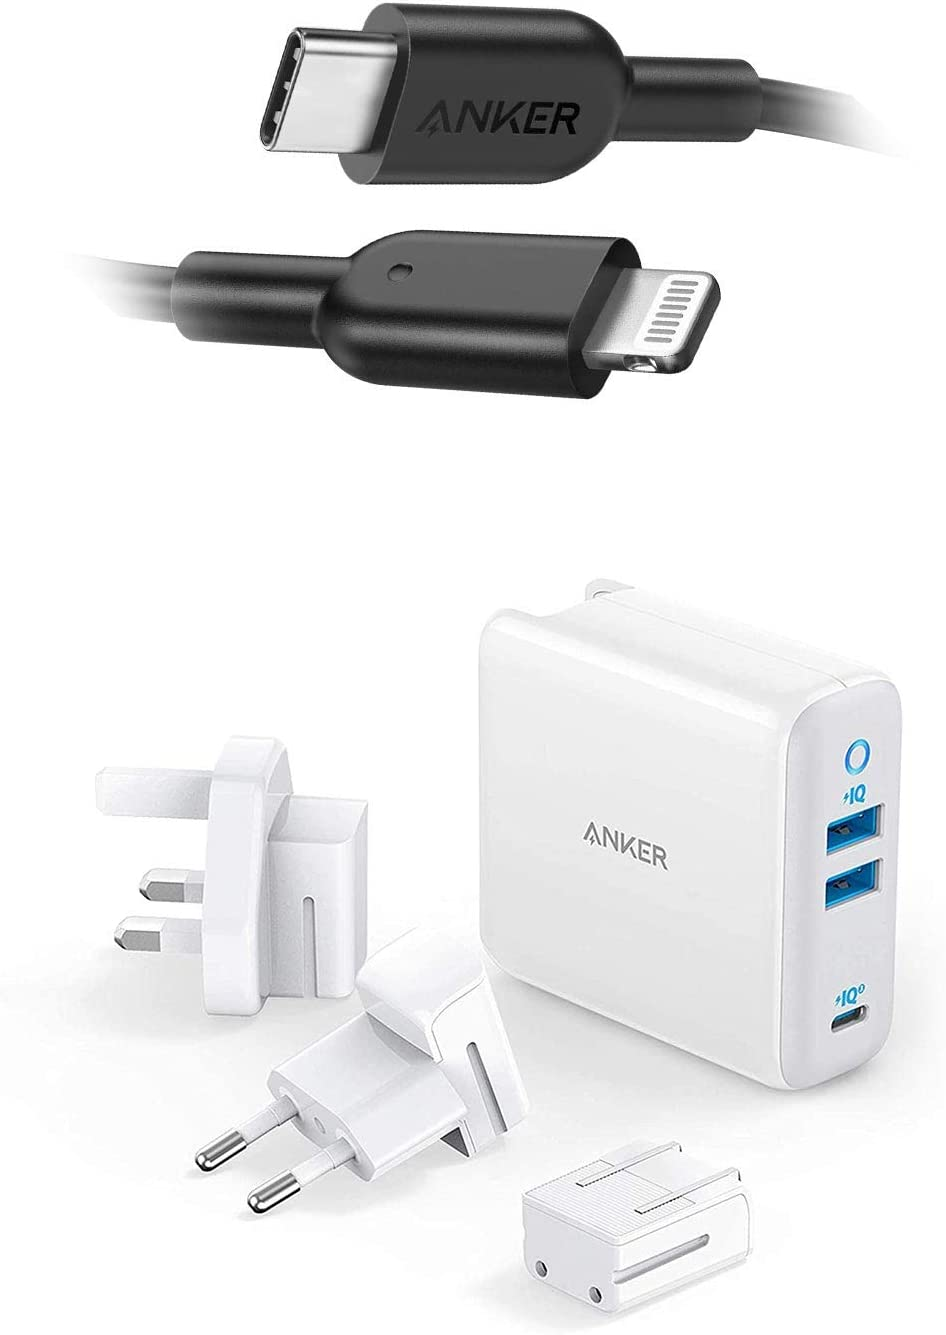 iPhone 11 Charger, Anker USB C to Lightning Cable [6ft Apple MFi Certified] Powerline II and Anker 65W 3 Port PIQ 3.0&GaN Type-C Charger